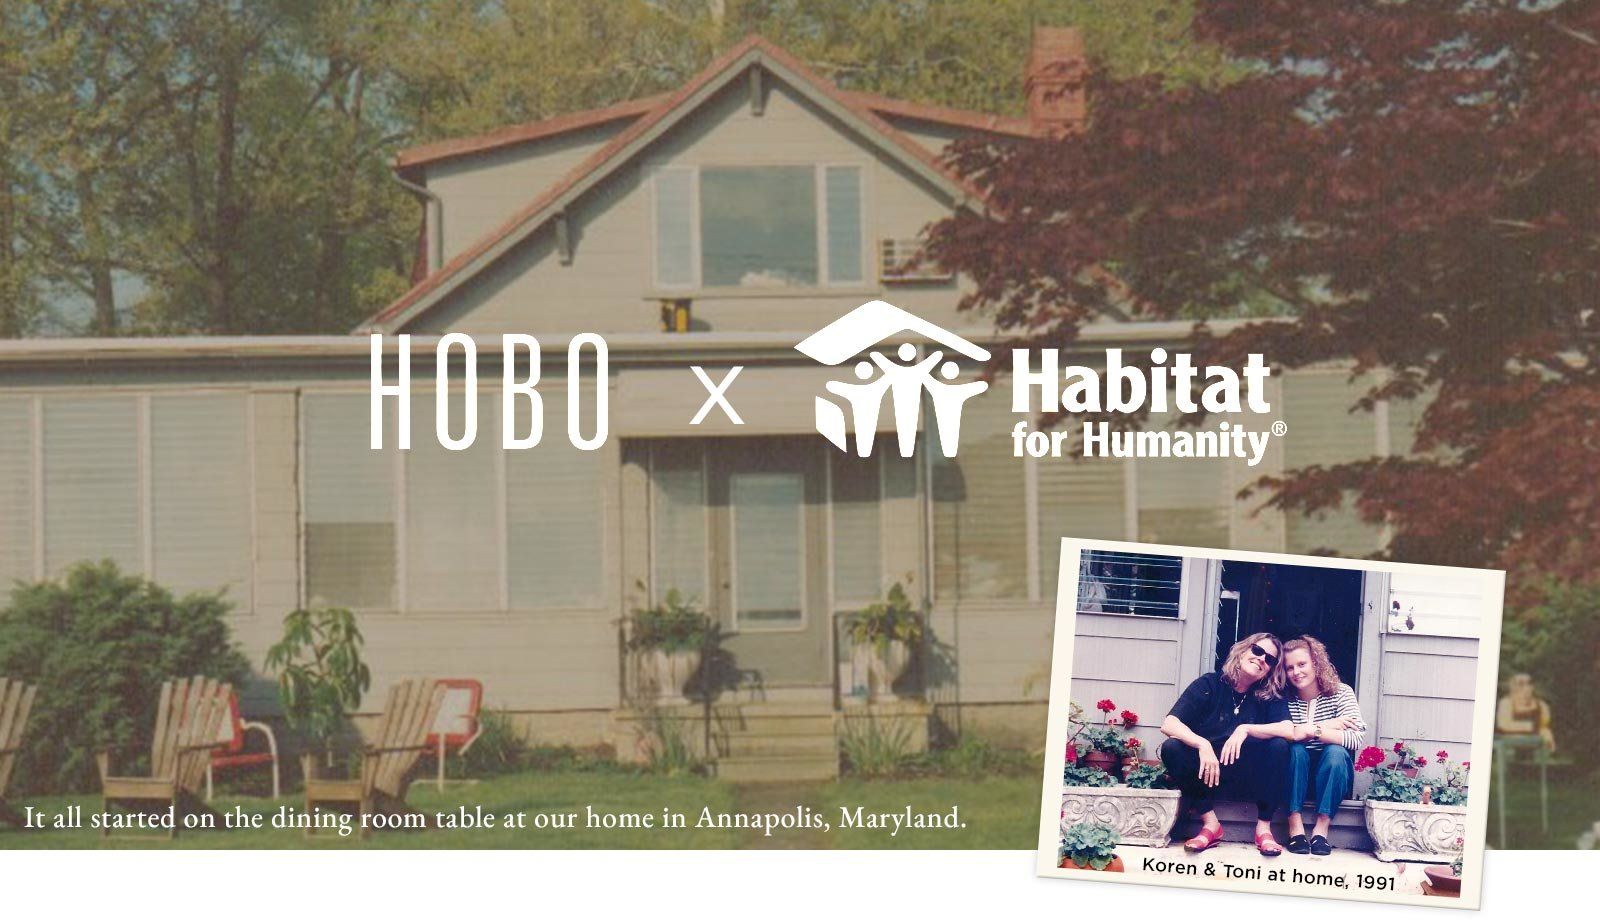 Hobo x Habitat For Humanity - it all started on the dining table at our home in Annapolis, Maryland.